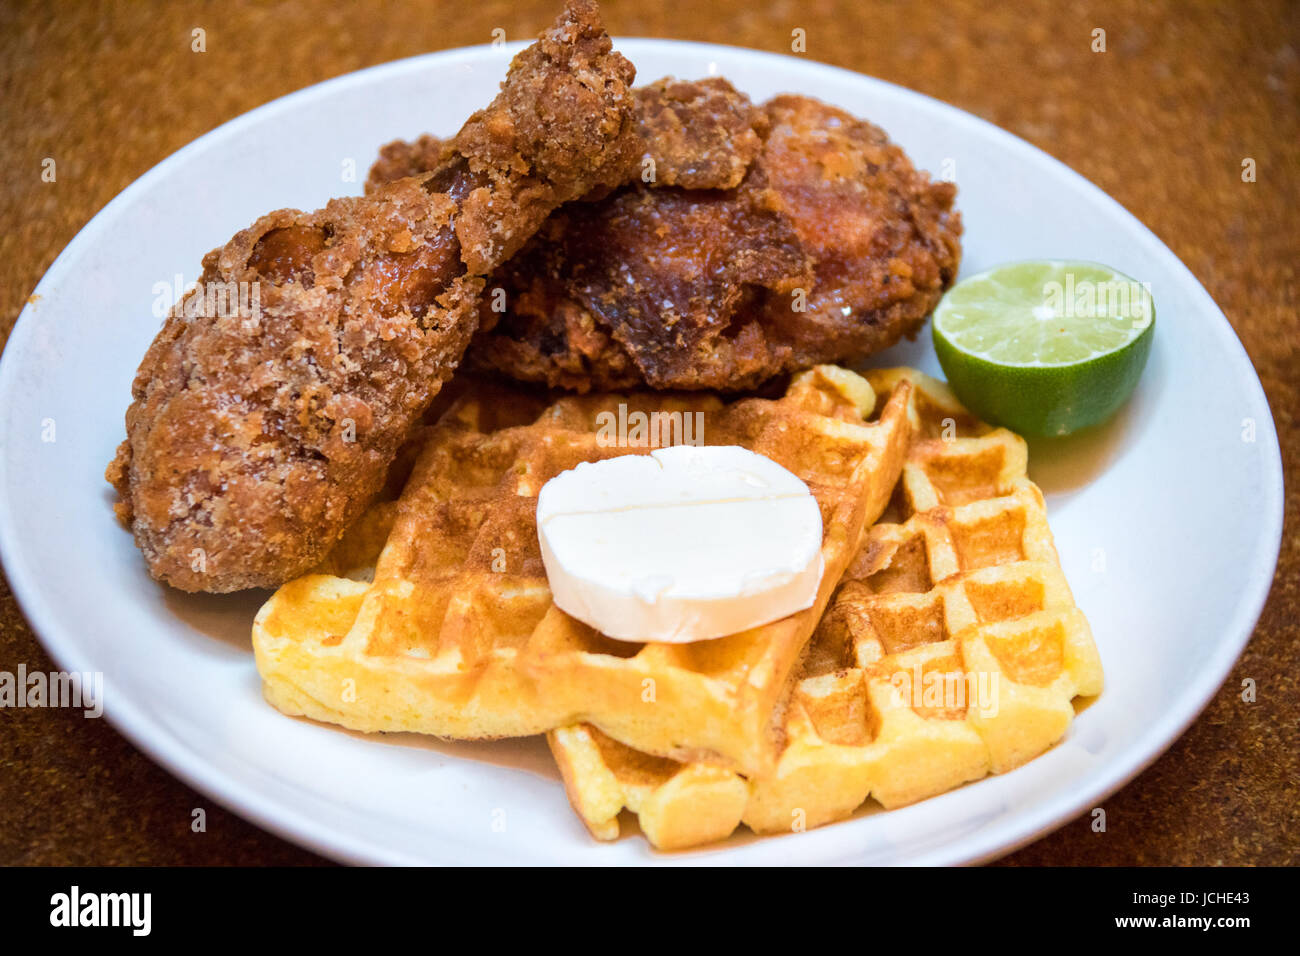 Habanero fried chicken and Waffles, Brunch at Momofuku Ma Peche Restaurant, Manhattan, New York - Stock Image